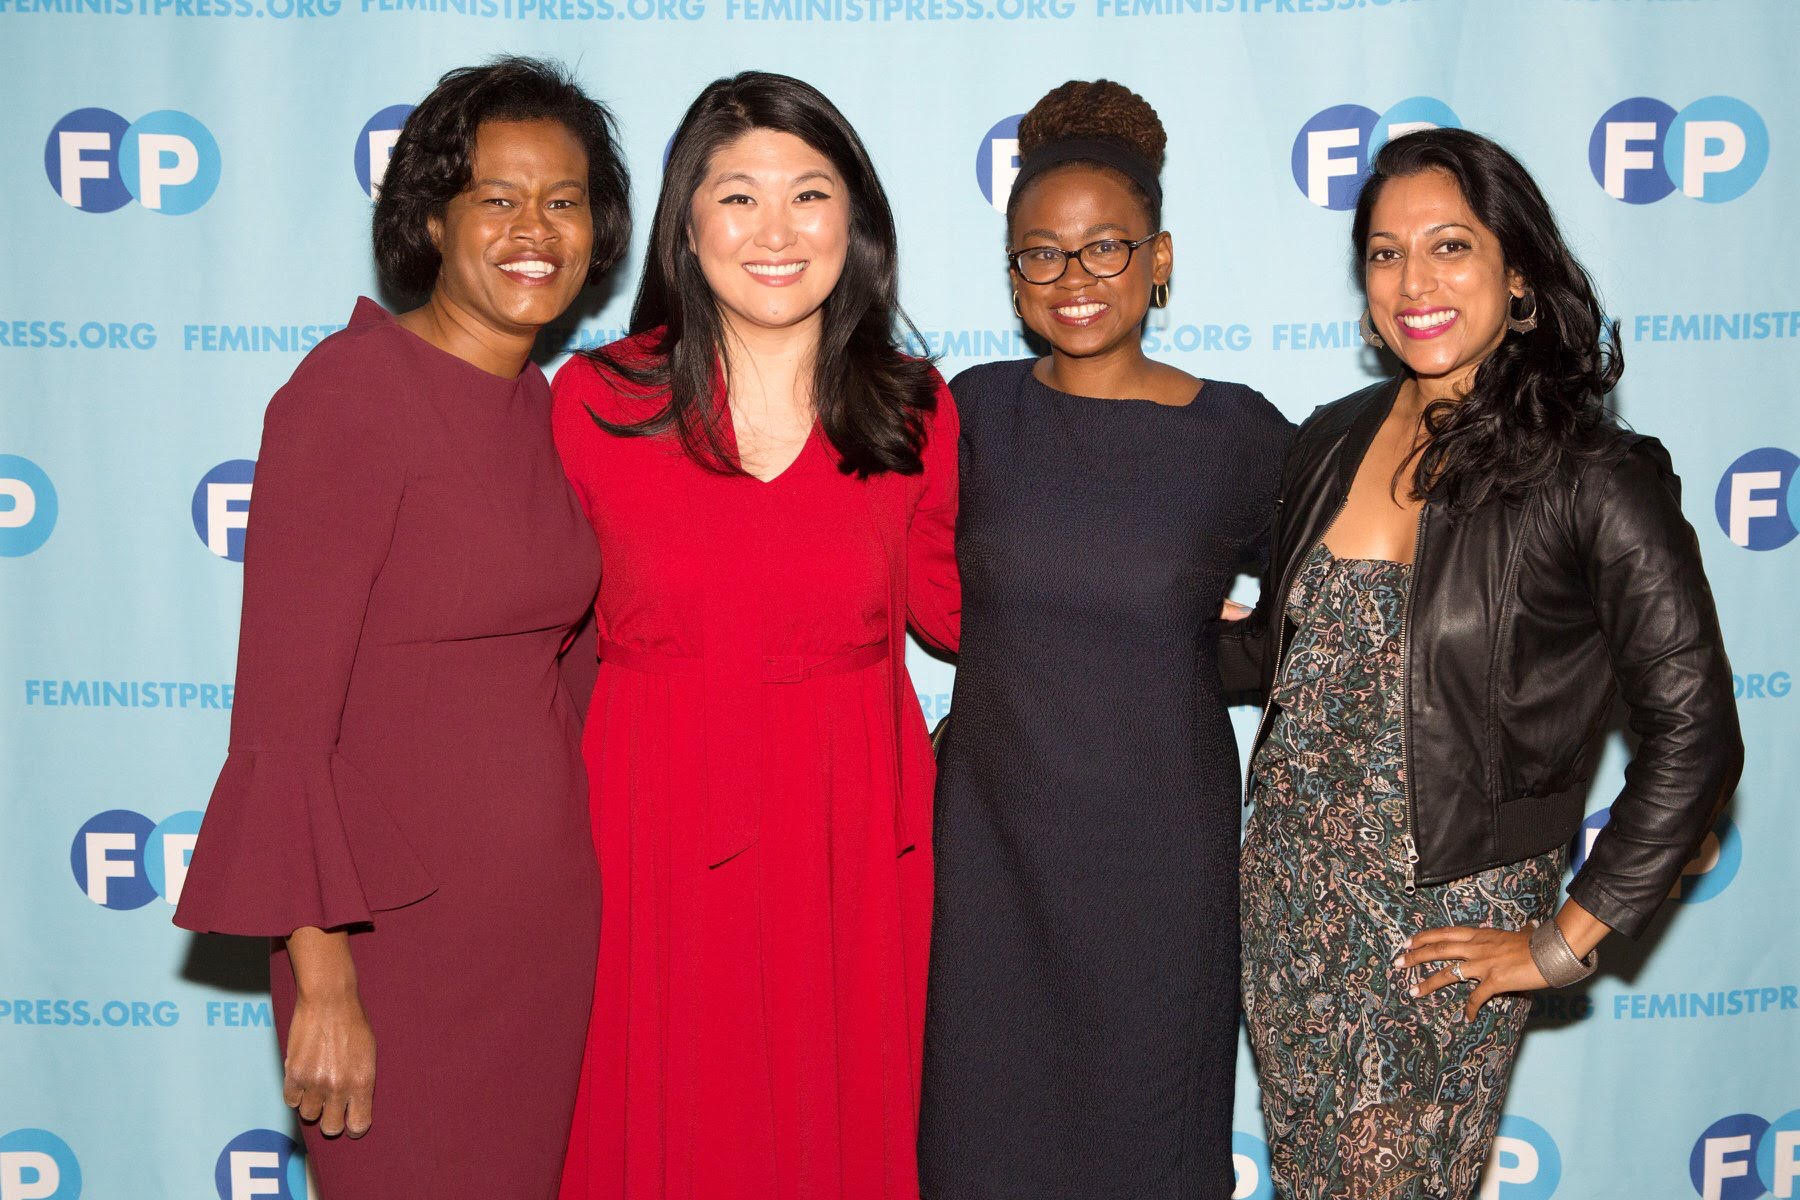 Prisca with her squad - Dawn Smalls, Jamia Wilson, and Penny Abeywardena at the 2018 Feminist Press Feminist Power Awards. Photo credit: Alexa Hoyer.